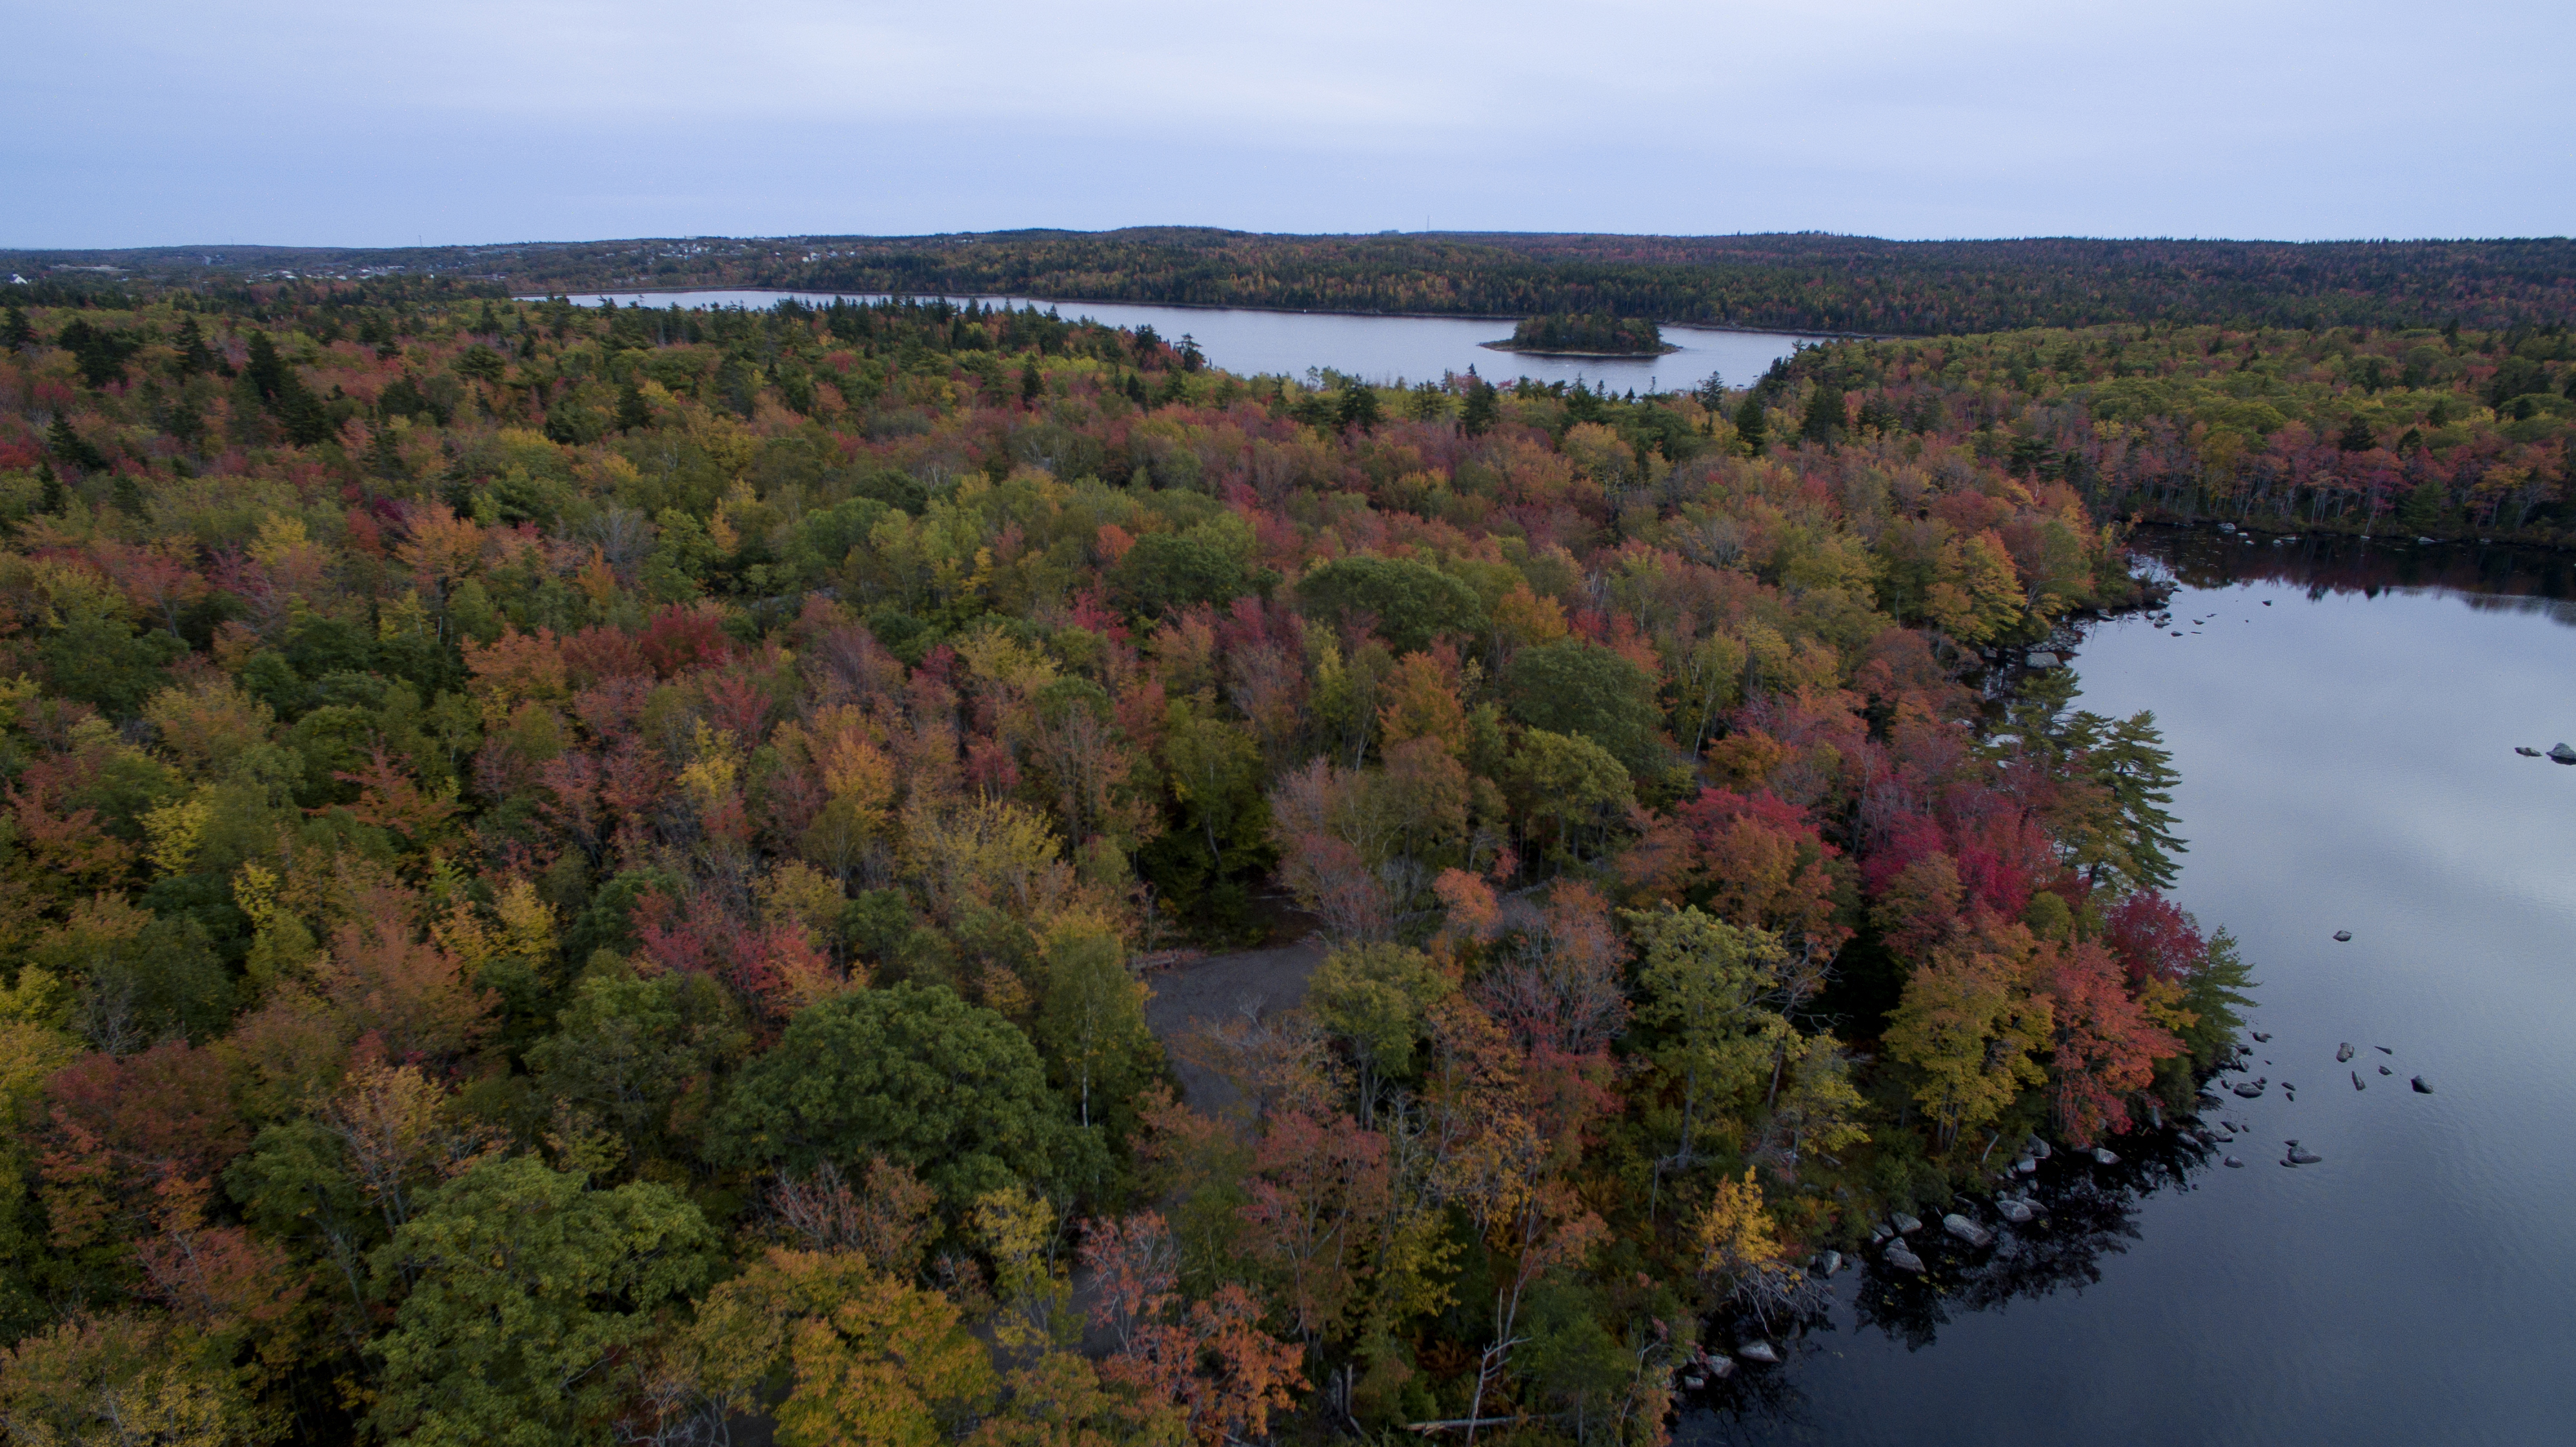 Long lake Park's Lakeview trail is in full fall colours this week. you can see Withrod Lake in the foreground and Long lake in the distance with Goat Island.